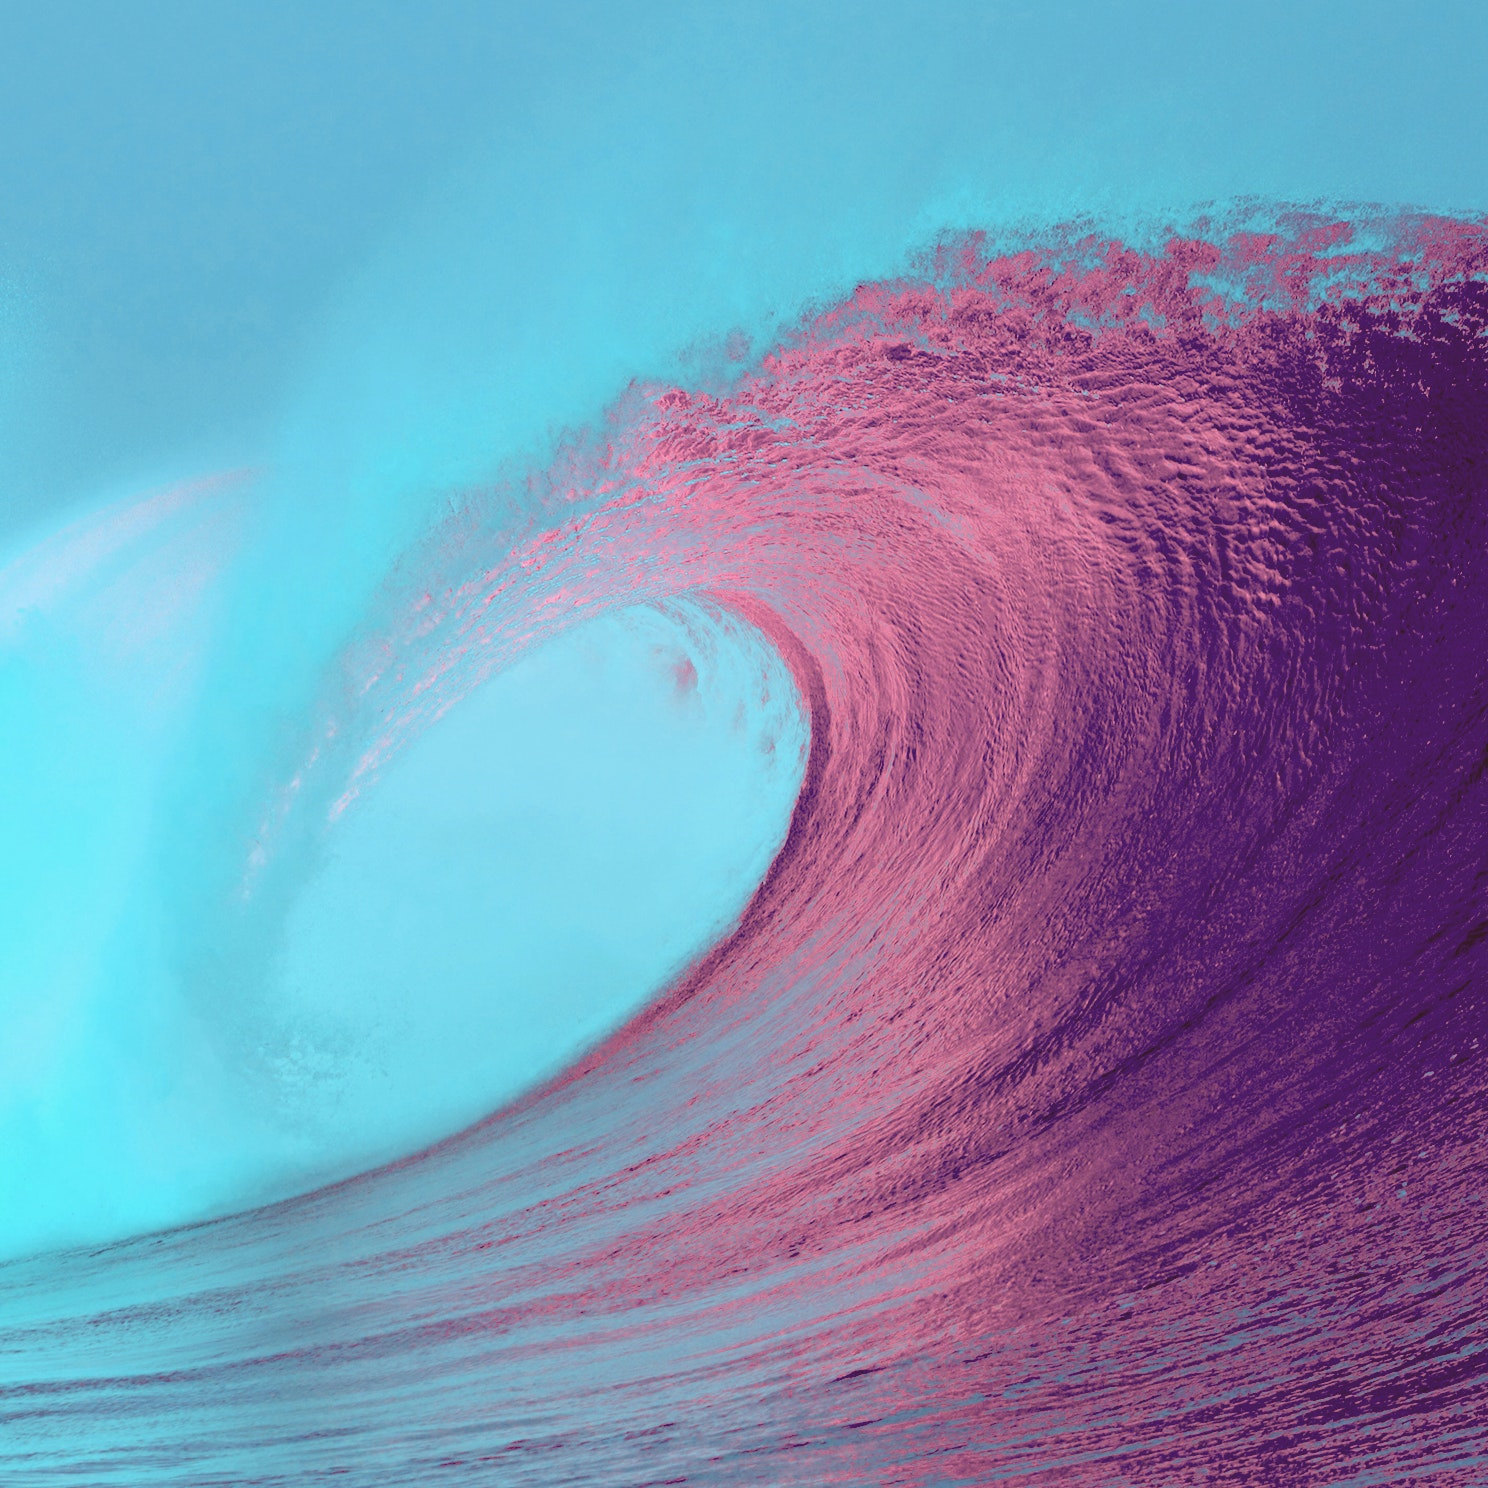 Waves Wallpapers: 1000+ Amazing Wave Photos · Pexels · Free Stock Photos